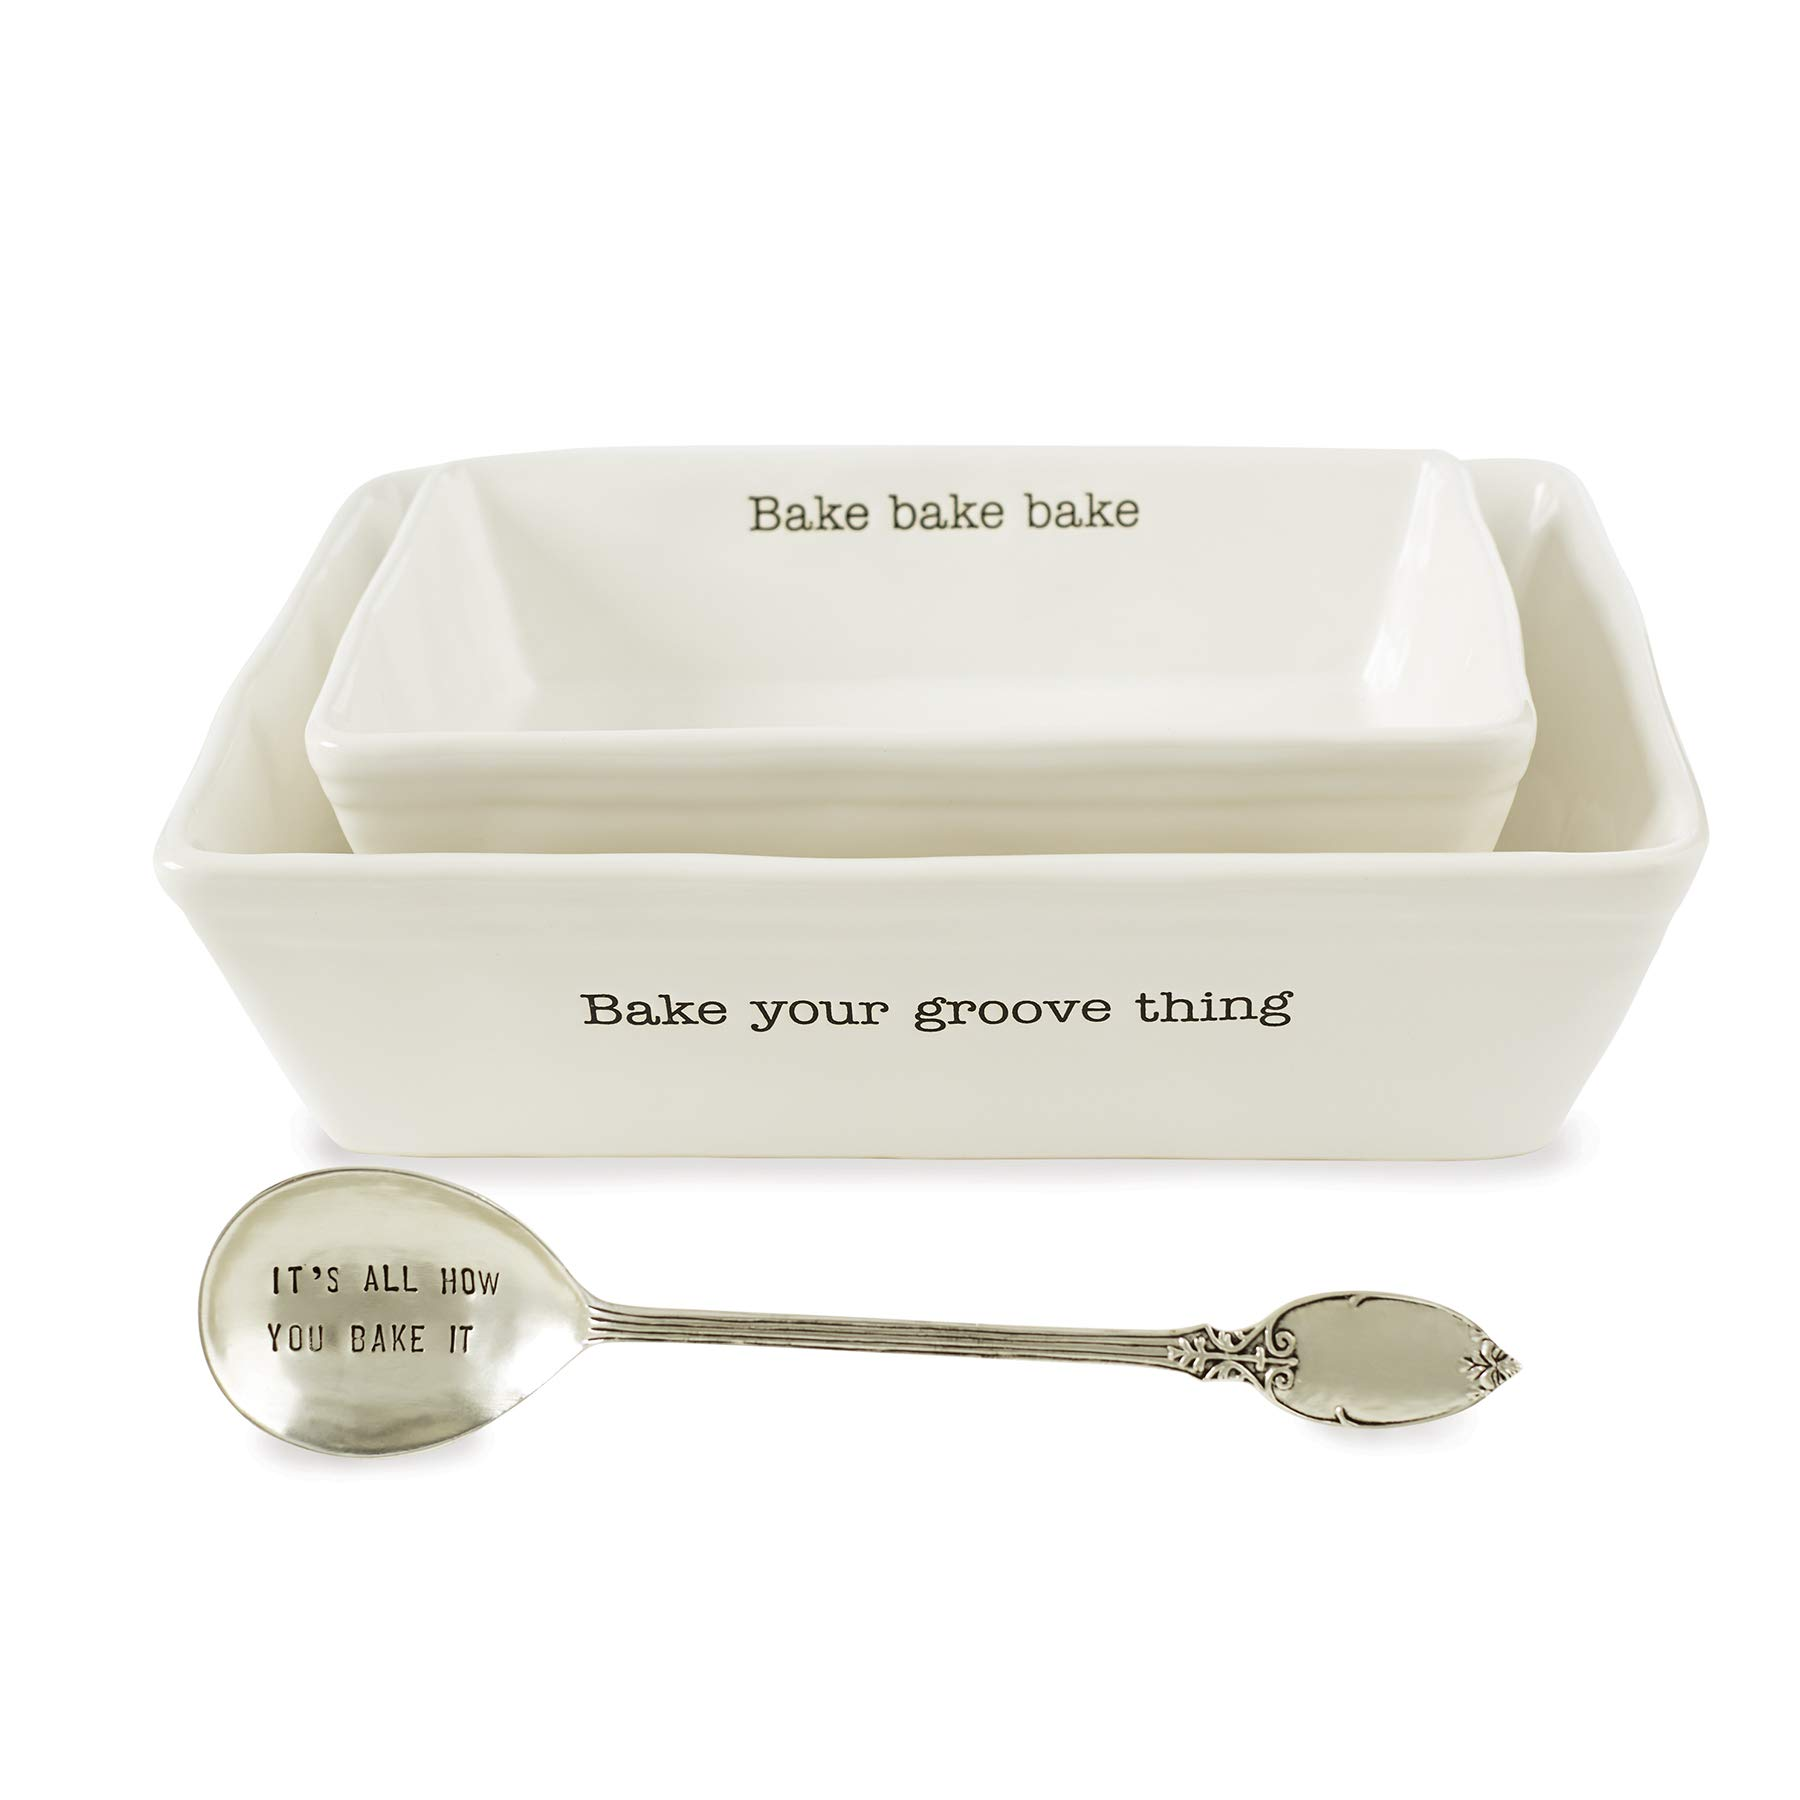 Mud Pie 48010008 Farmhouse Inspired Set of 2 Serving Spoon Baking Dish Set, One Size, White by Mud Pie (Image #1)